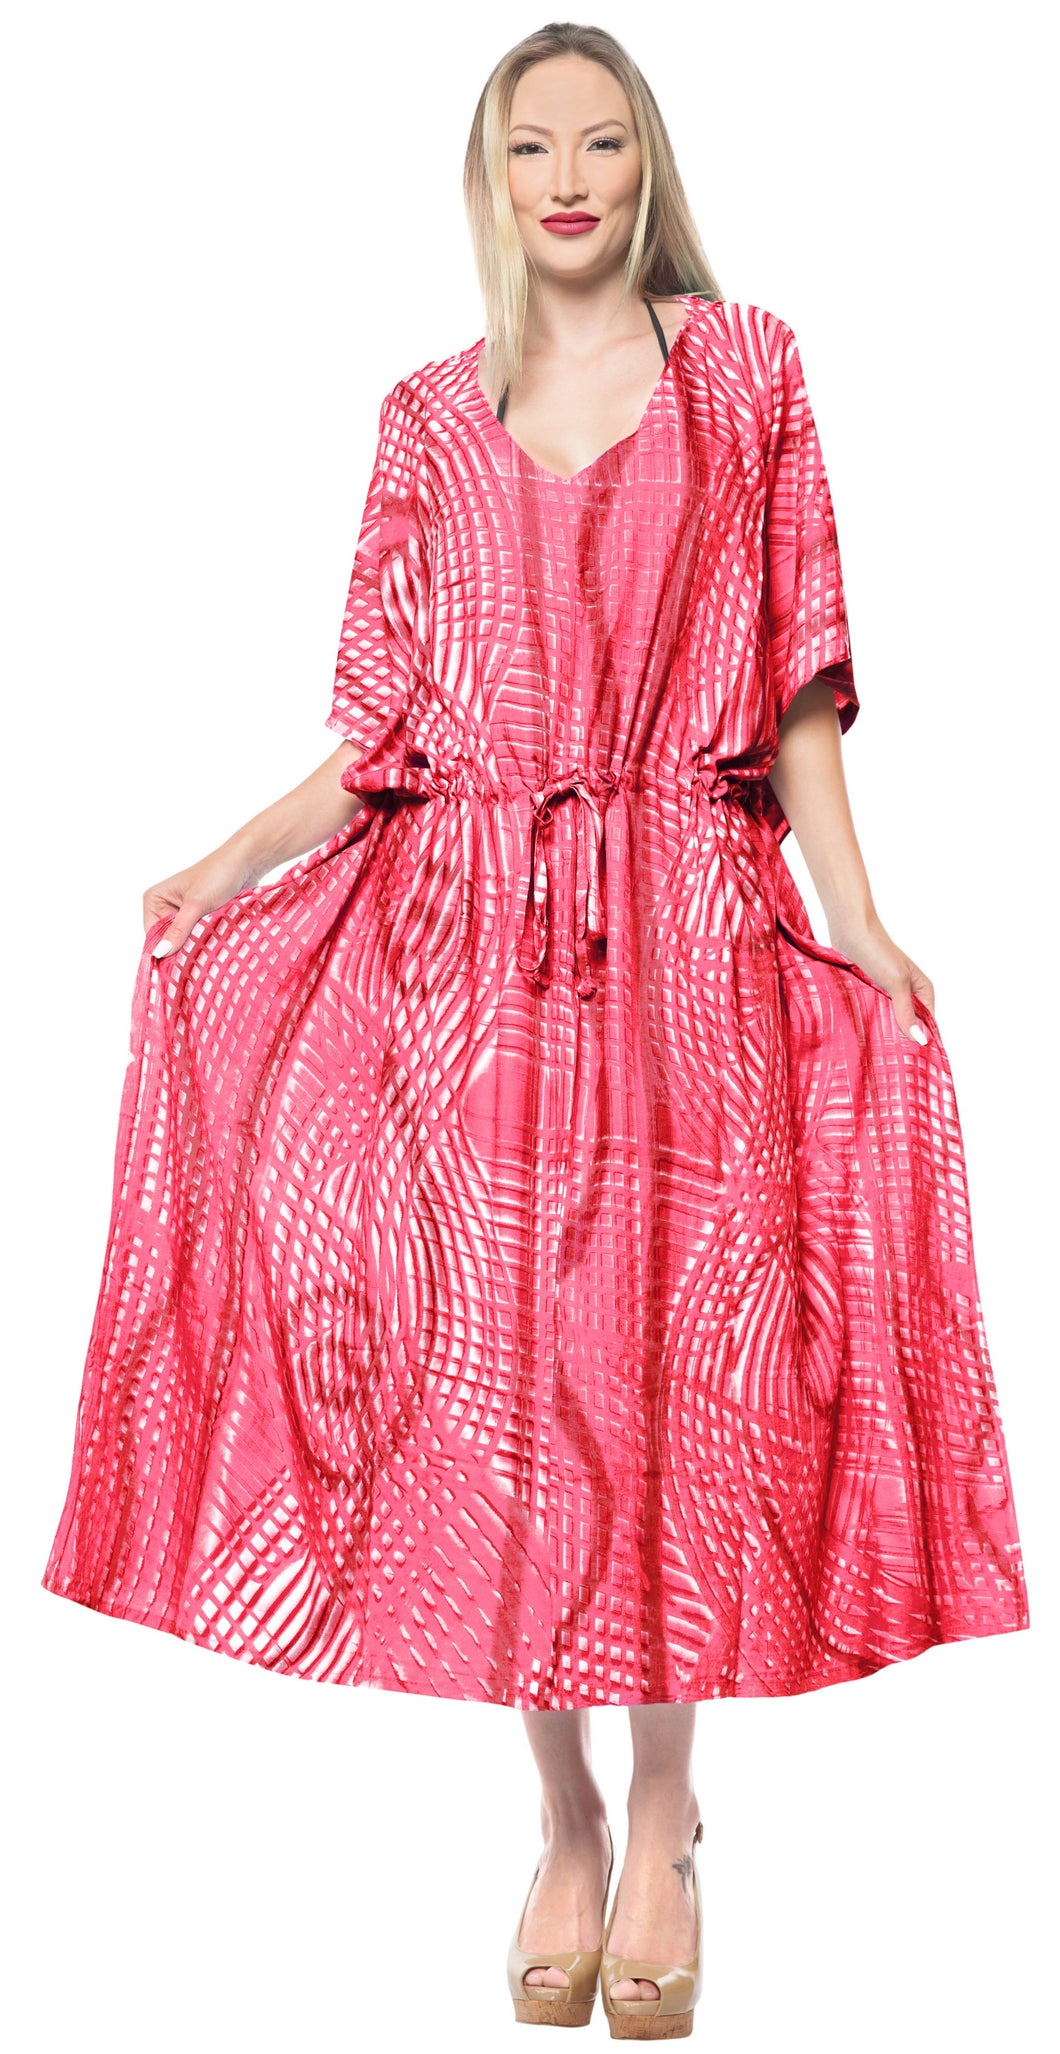 la-leela-rayon-tie_dye-caftan-tunic-beach-dress-women-red_1376-osfm-14-32w